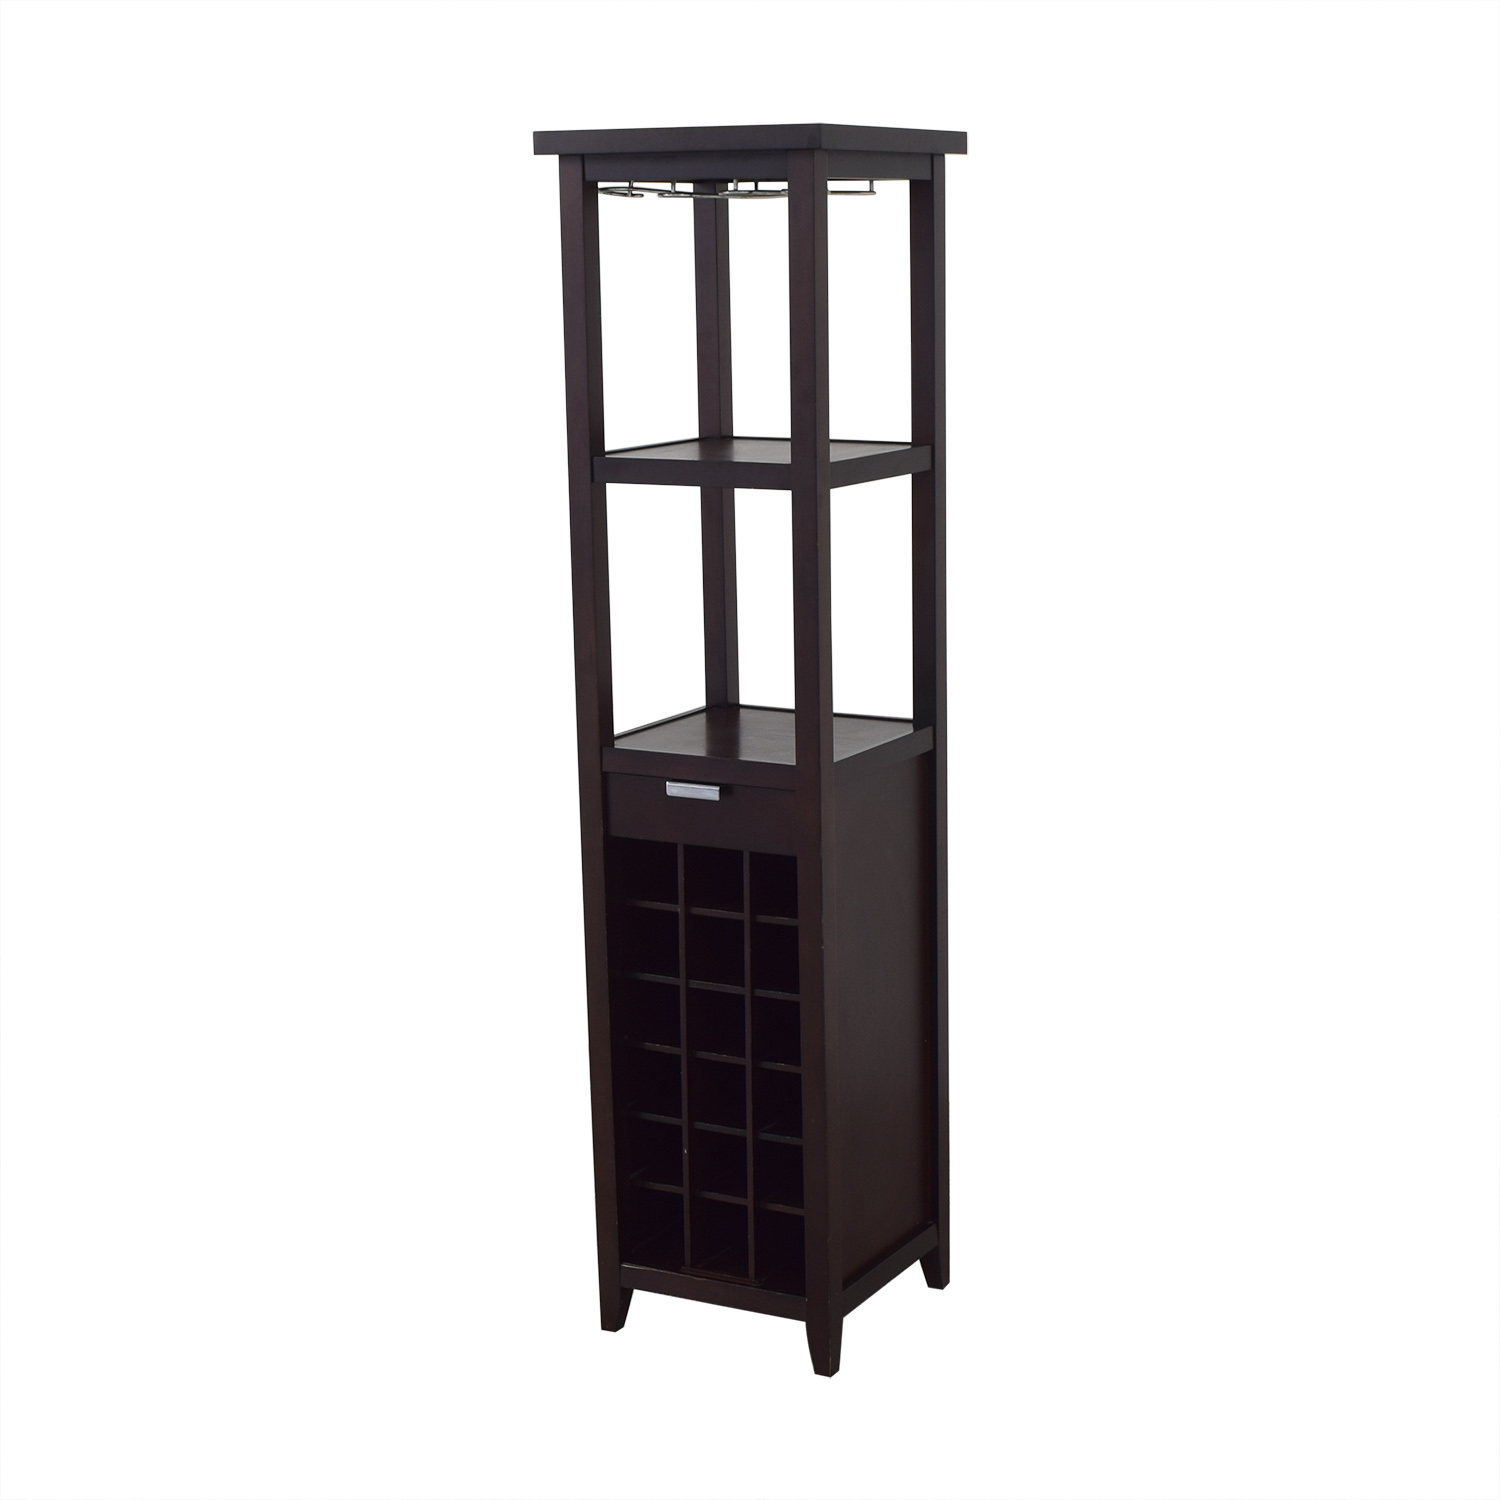 Crate & Barrel Crate & Barrel Wine Stand with Storage Storage